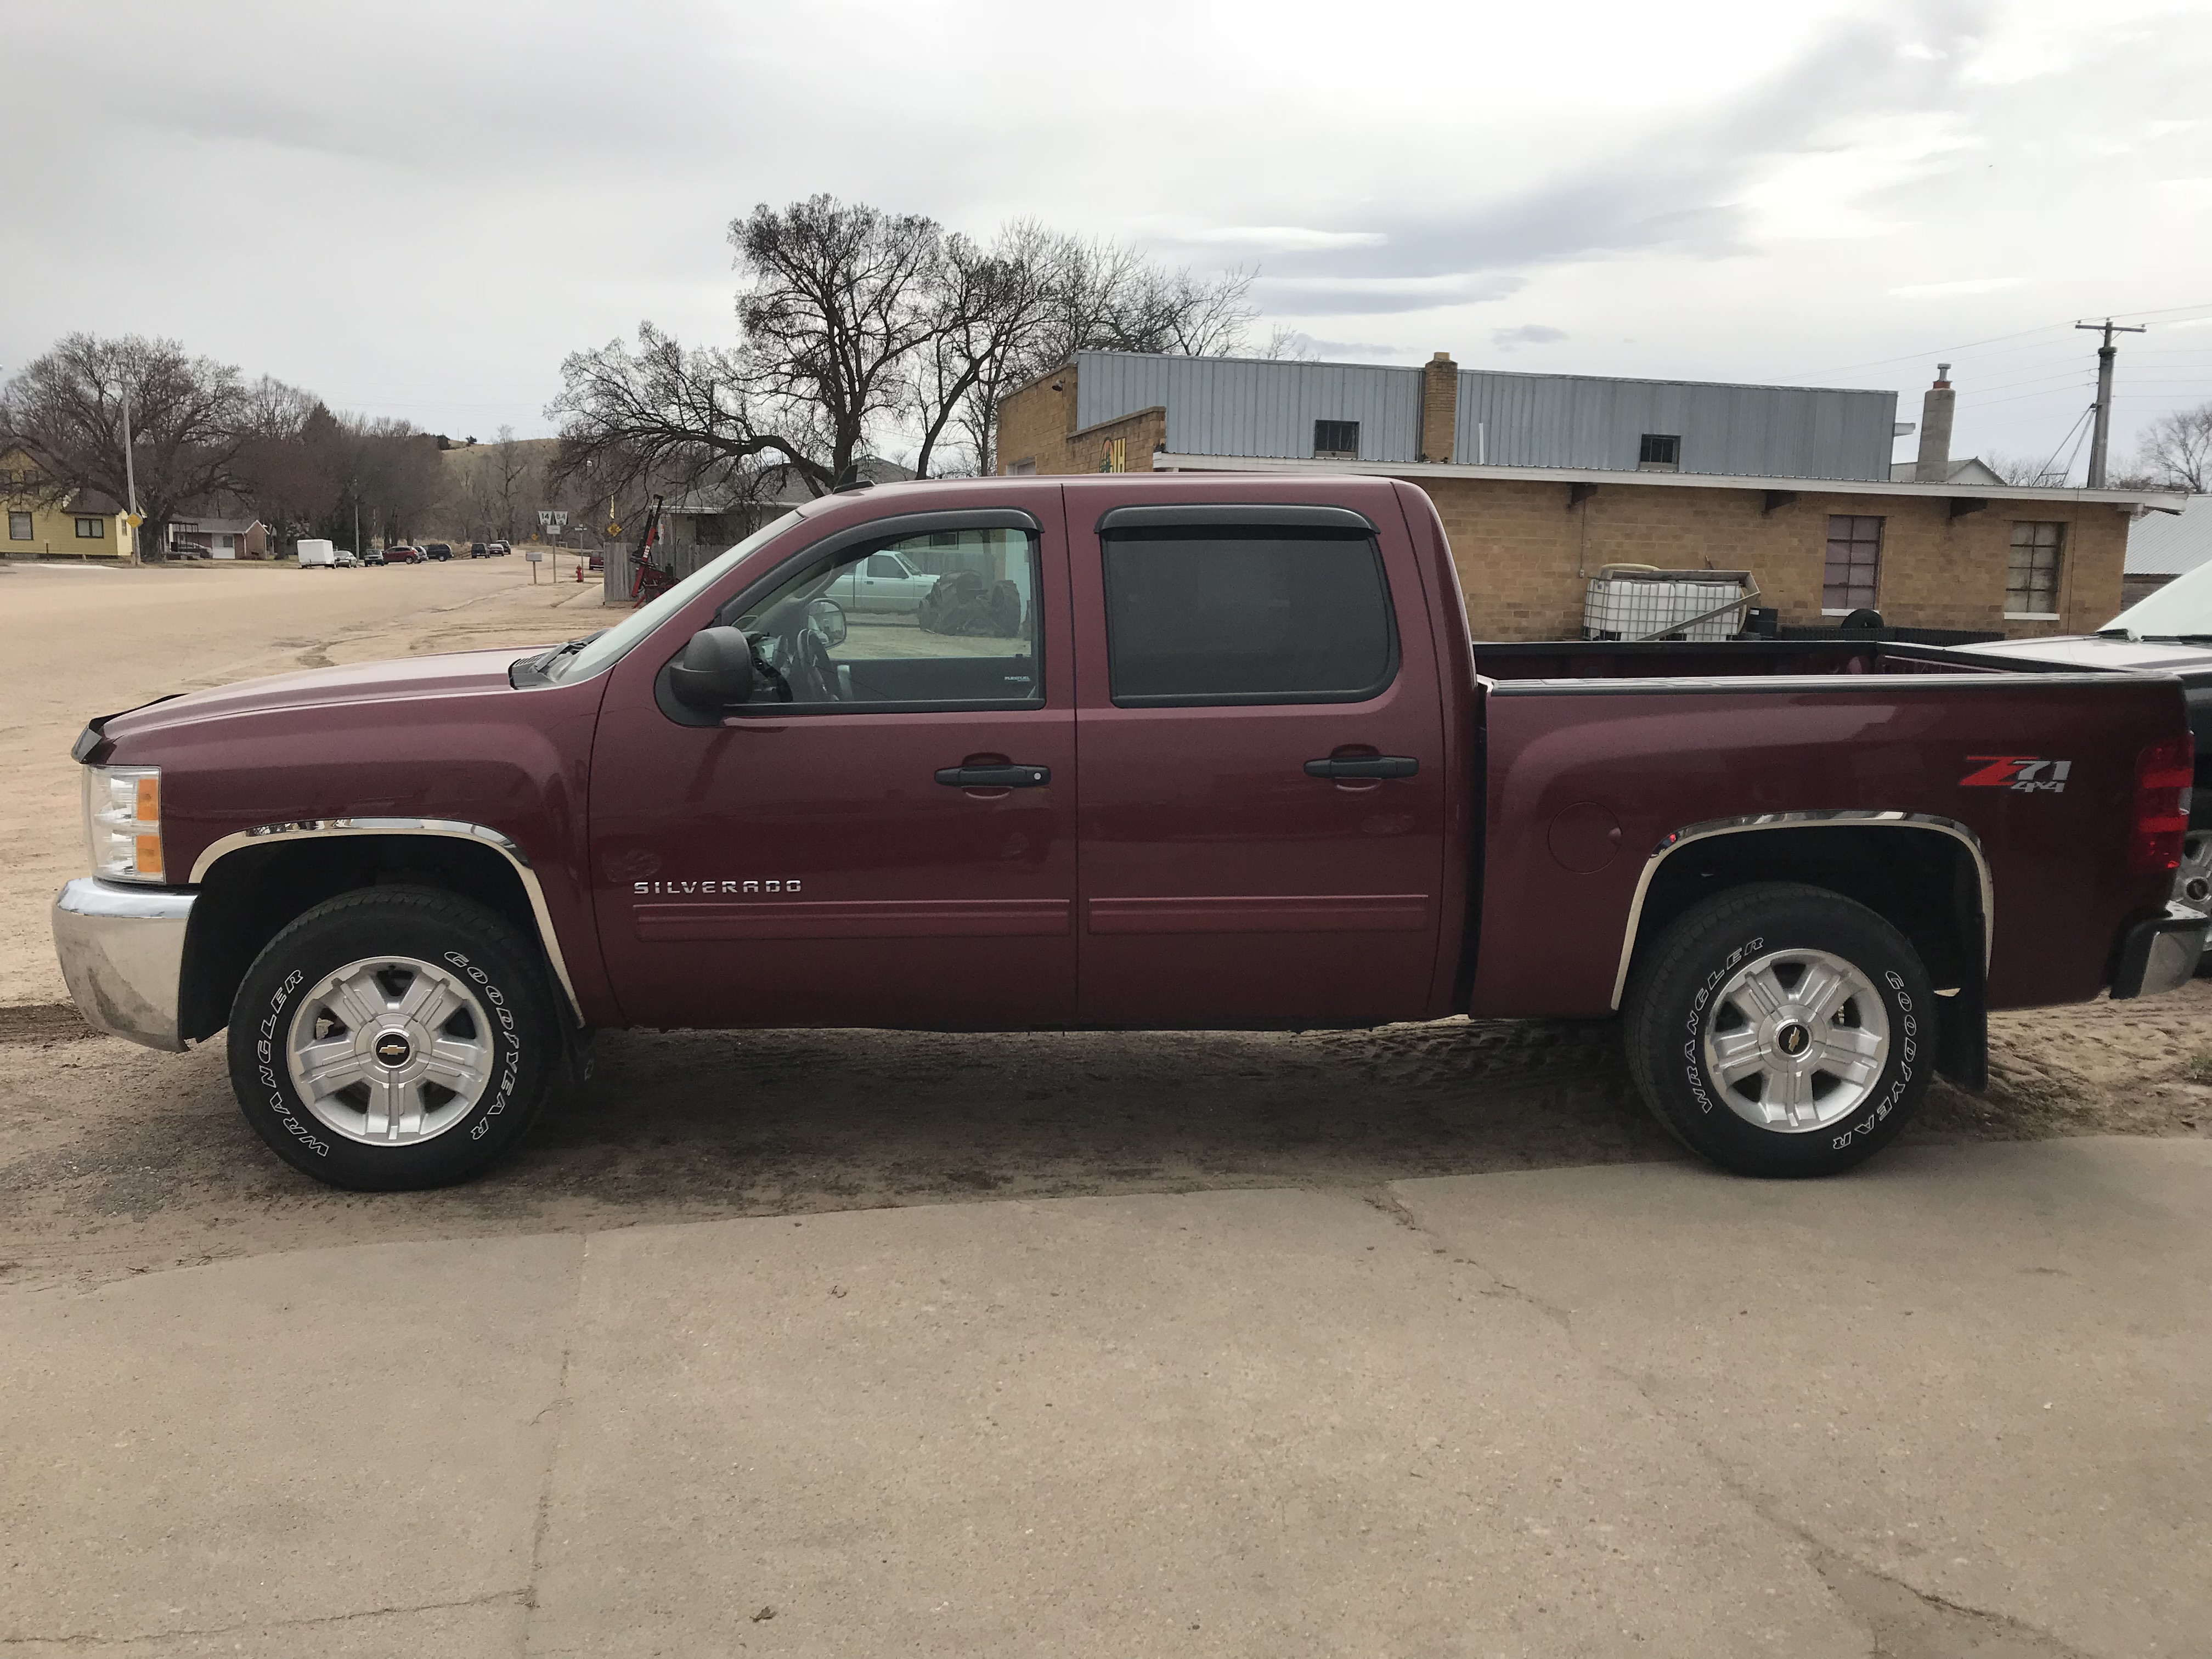 chevrolet automobiles used l in pickup photo view right corner image details red ab rear victory lethbridge silverado door